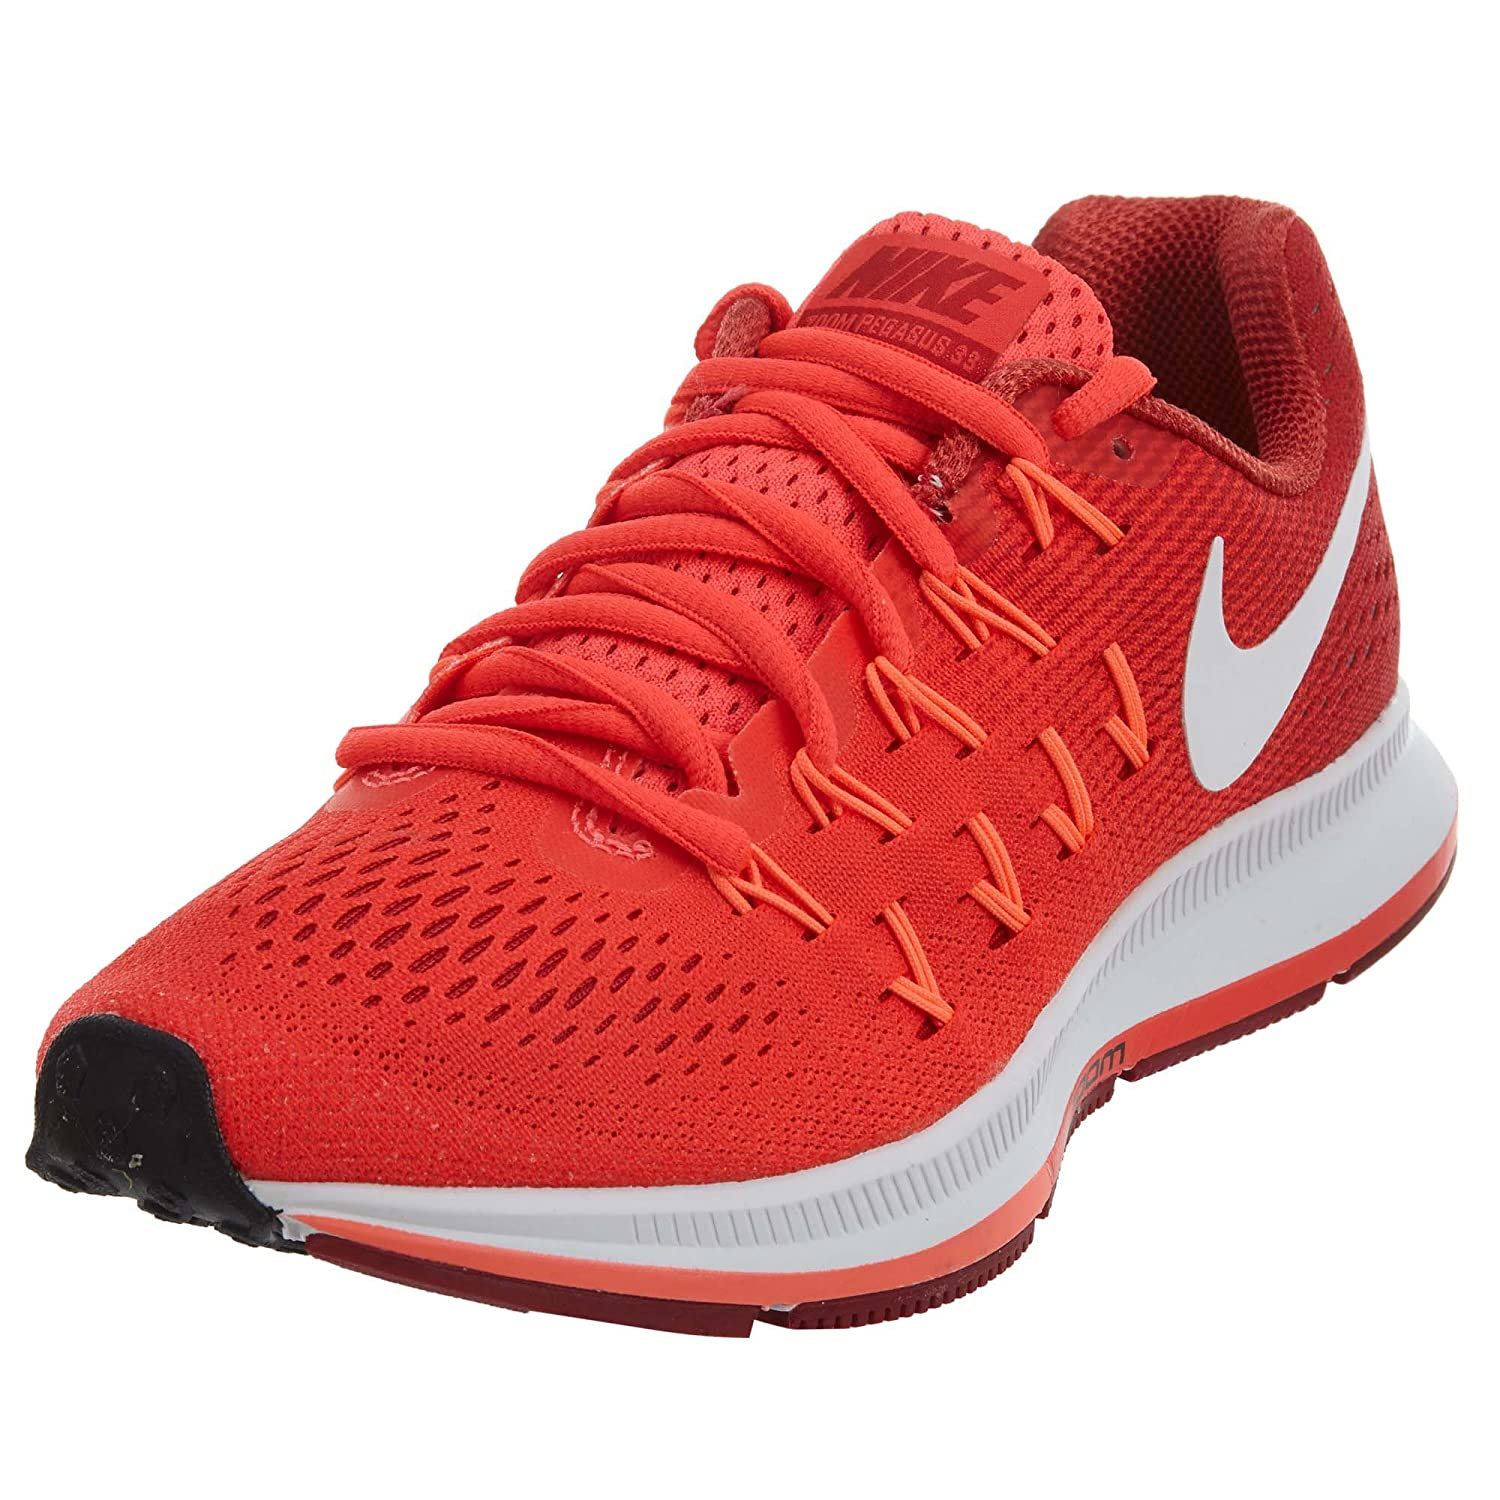 NIKE Women's Air Zoom Pegasus 33 B01I2JWV1G 5 B(M) US|Bright Crimson/Gym Red/Bright Mango/White